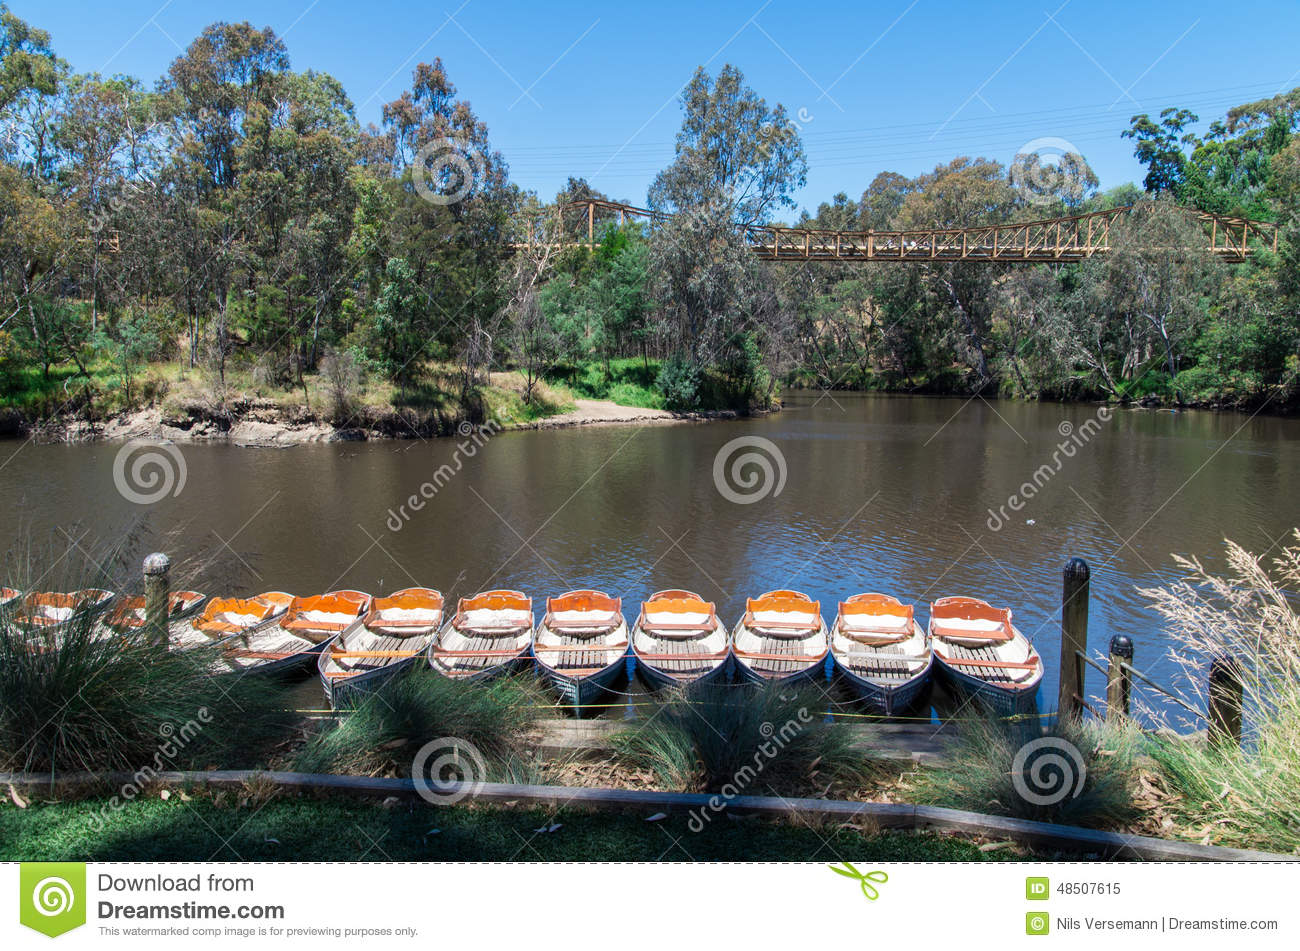 Rowing boats at Fairfield Boathouse